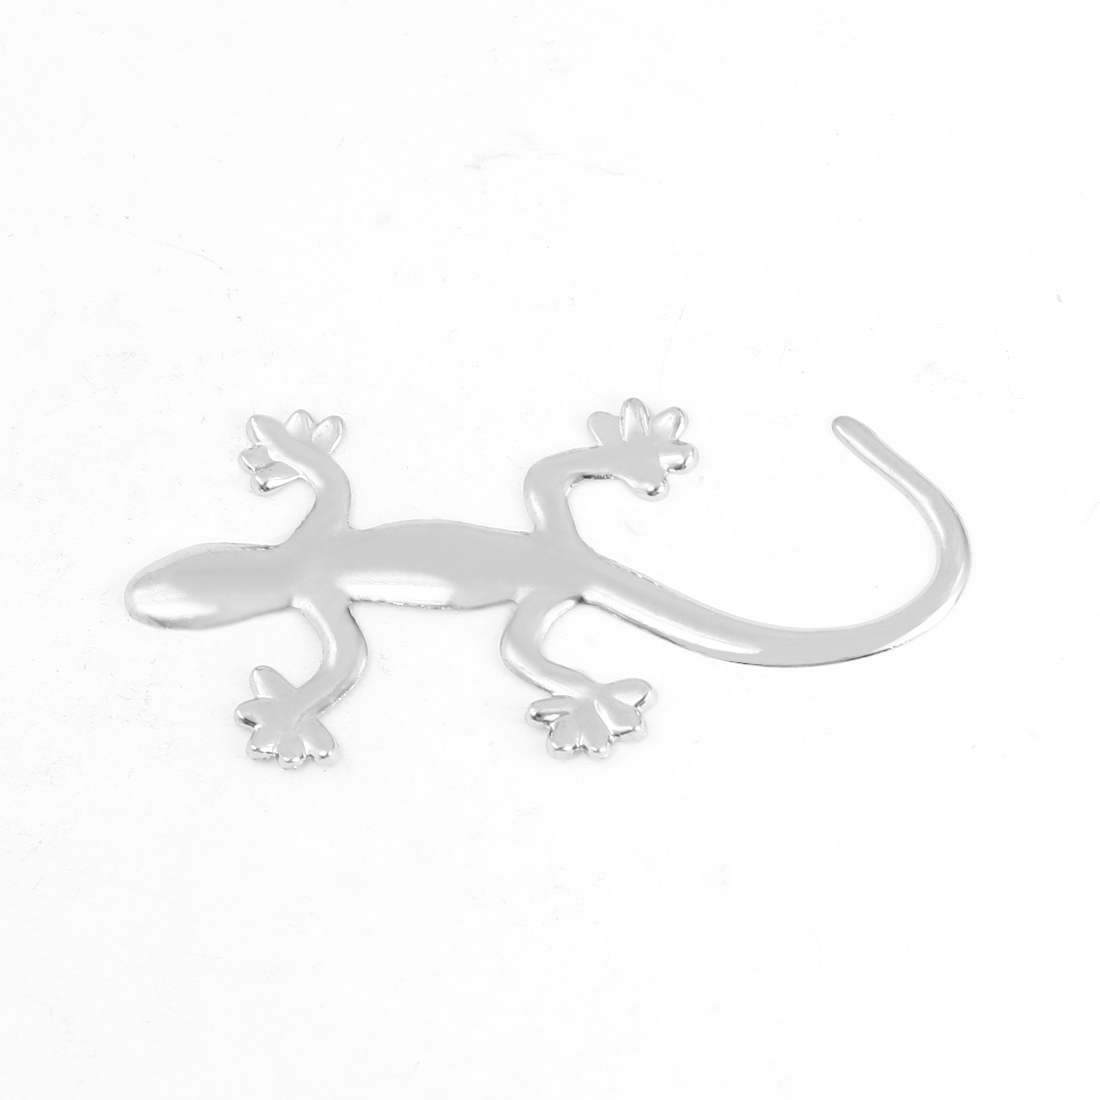 Car Vehicles Silver Tone Metal Wall Gecko Design Emblem Badge Sticker w Adhesive Tape